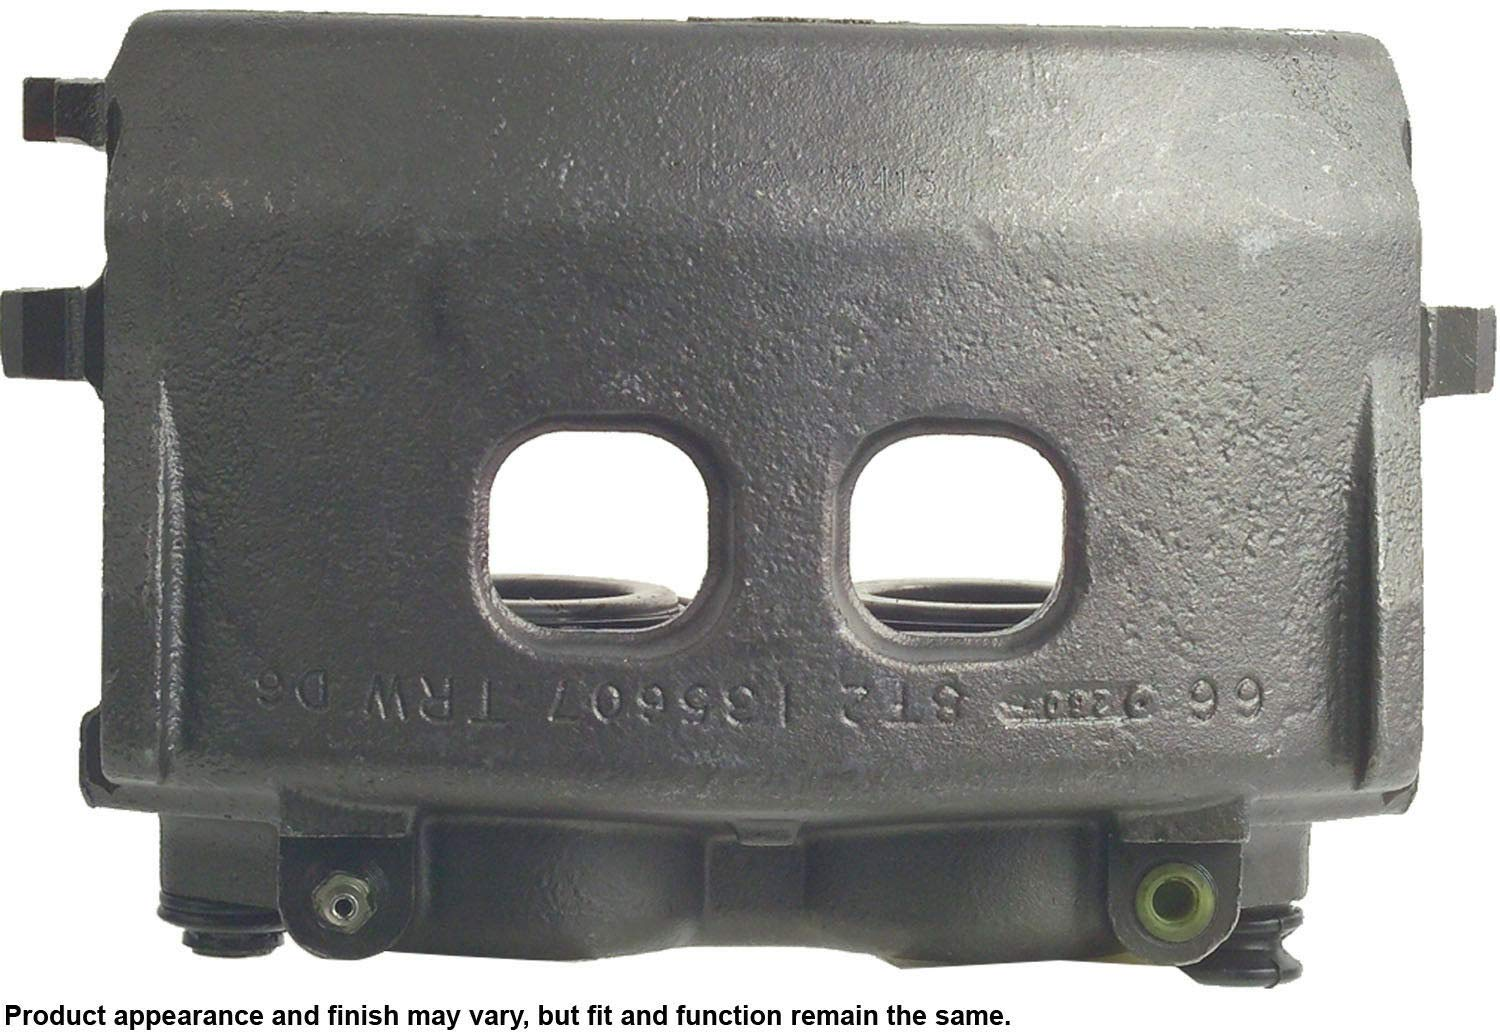 Cardone 18-8062 Remanufactured Domestic Friction Ready (Unloaded) Brake Caliper by A1 Cardone